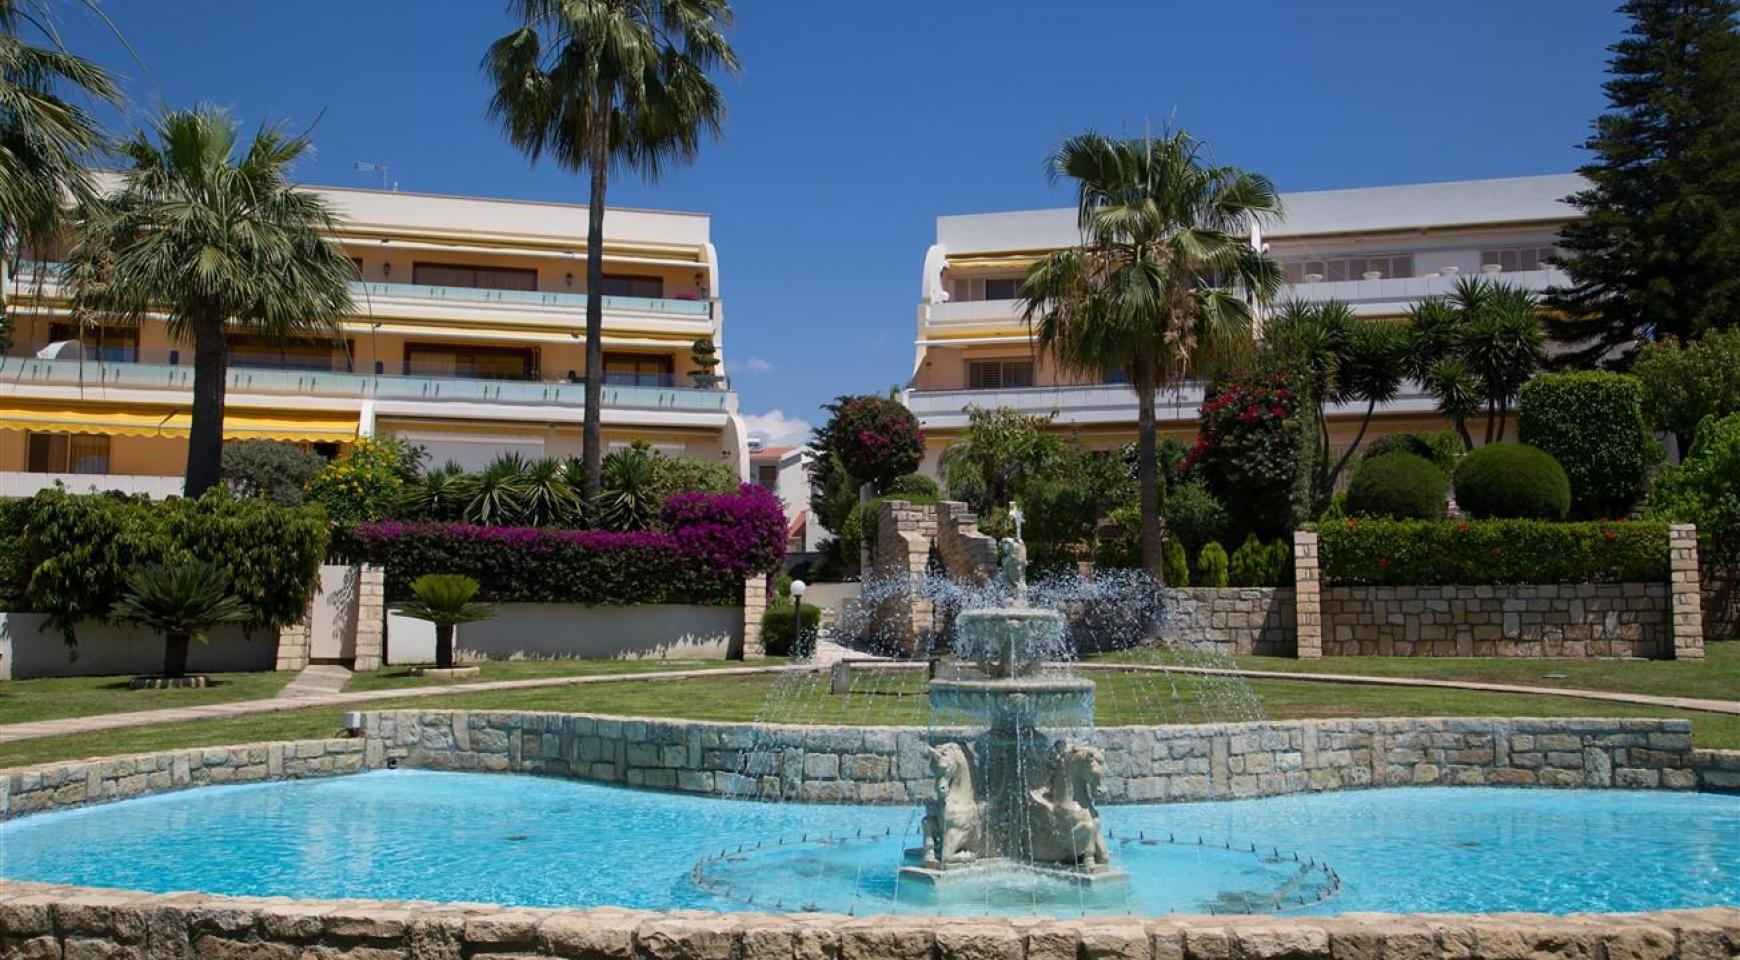 3 Bedroom Apartment in a Gated Complex by the Sea - 6